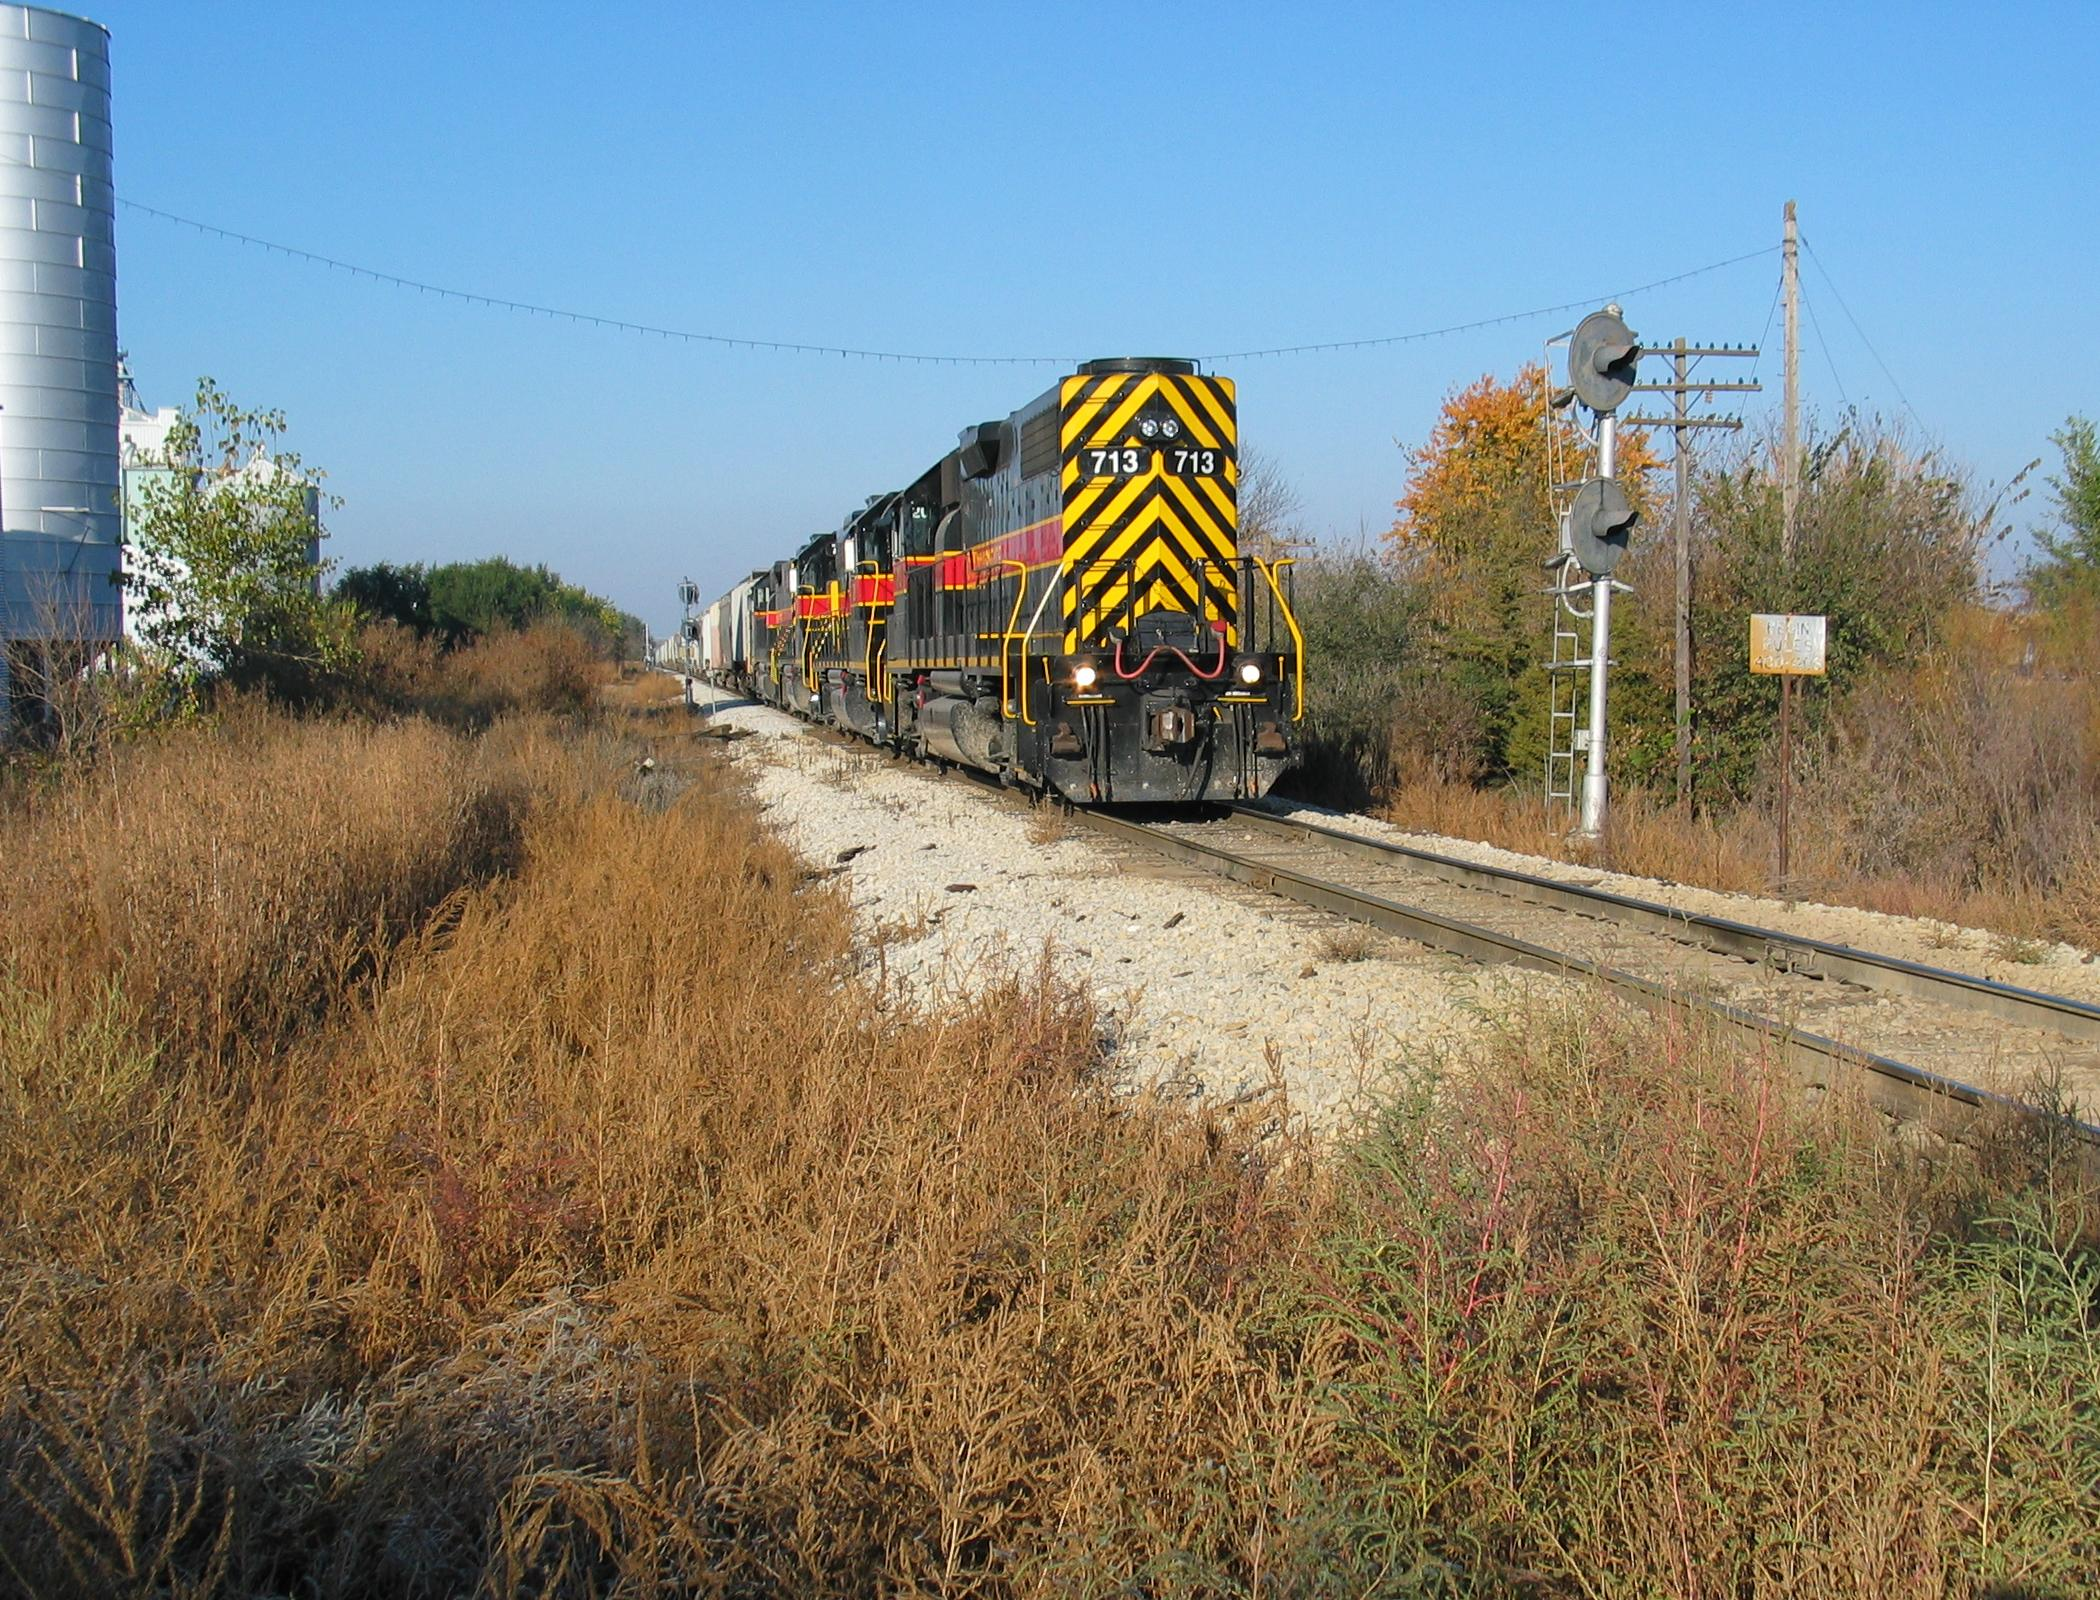 Power coupling onto the east end of the hoppers at Atlantic, getting ready to shove up to Harlan; Oct. 25, 2005.  This switch was the start of CTC into the Bluffs in RI days.